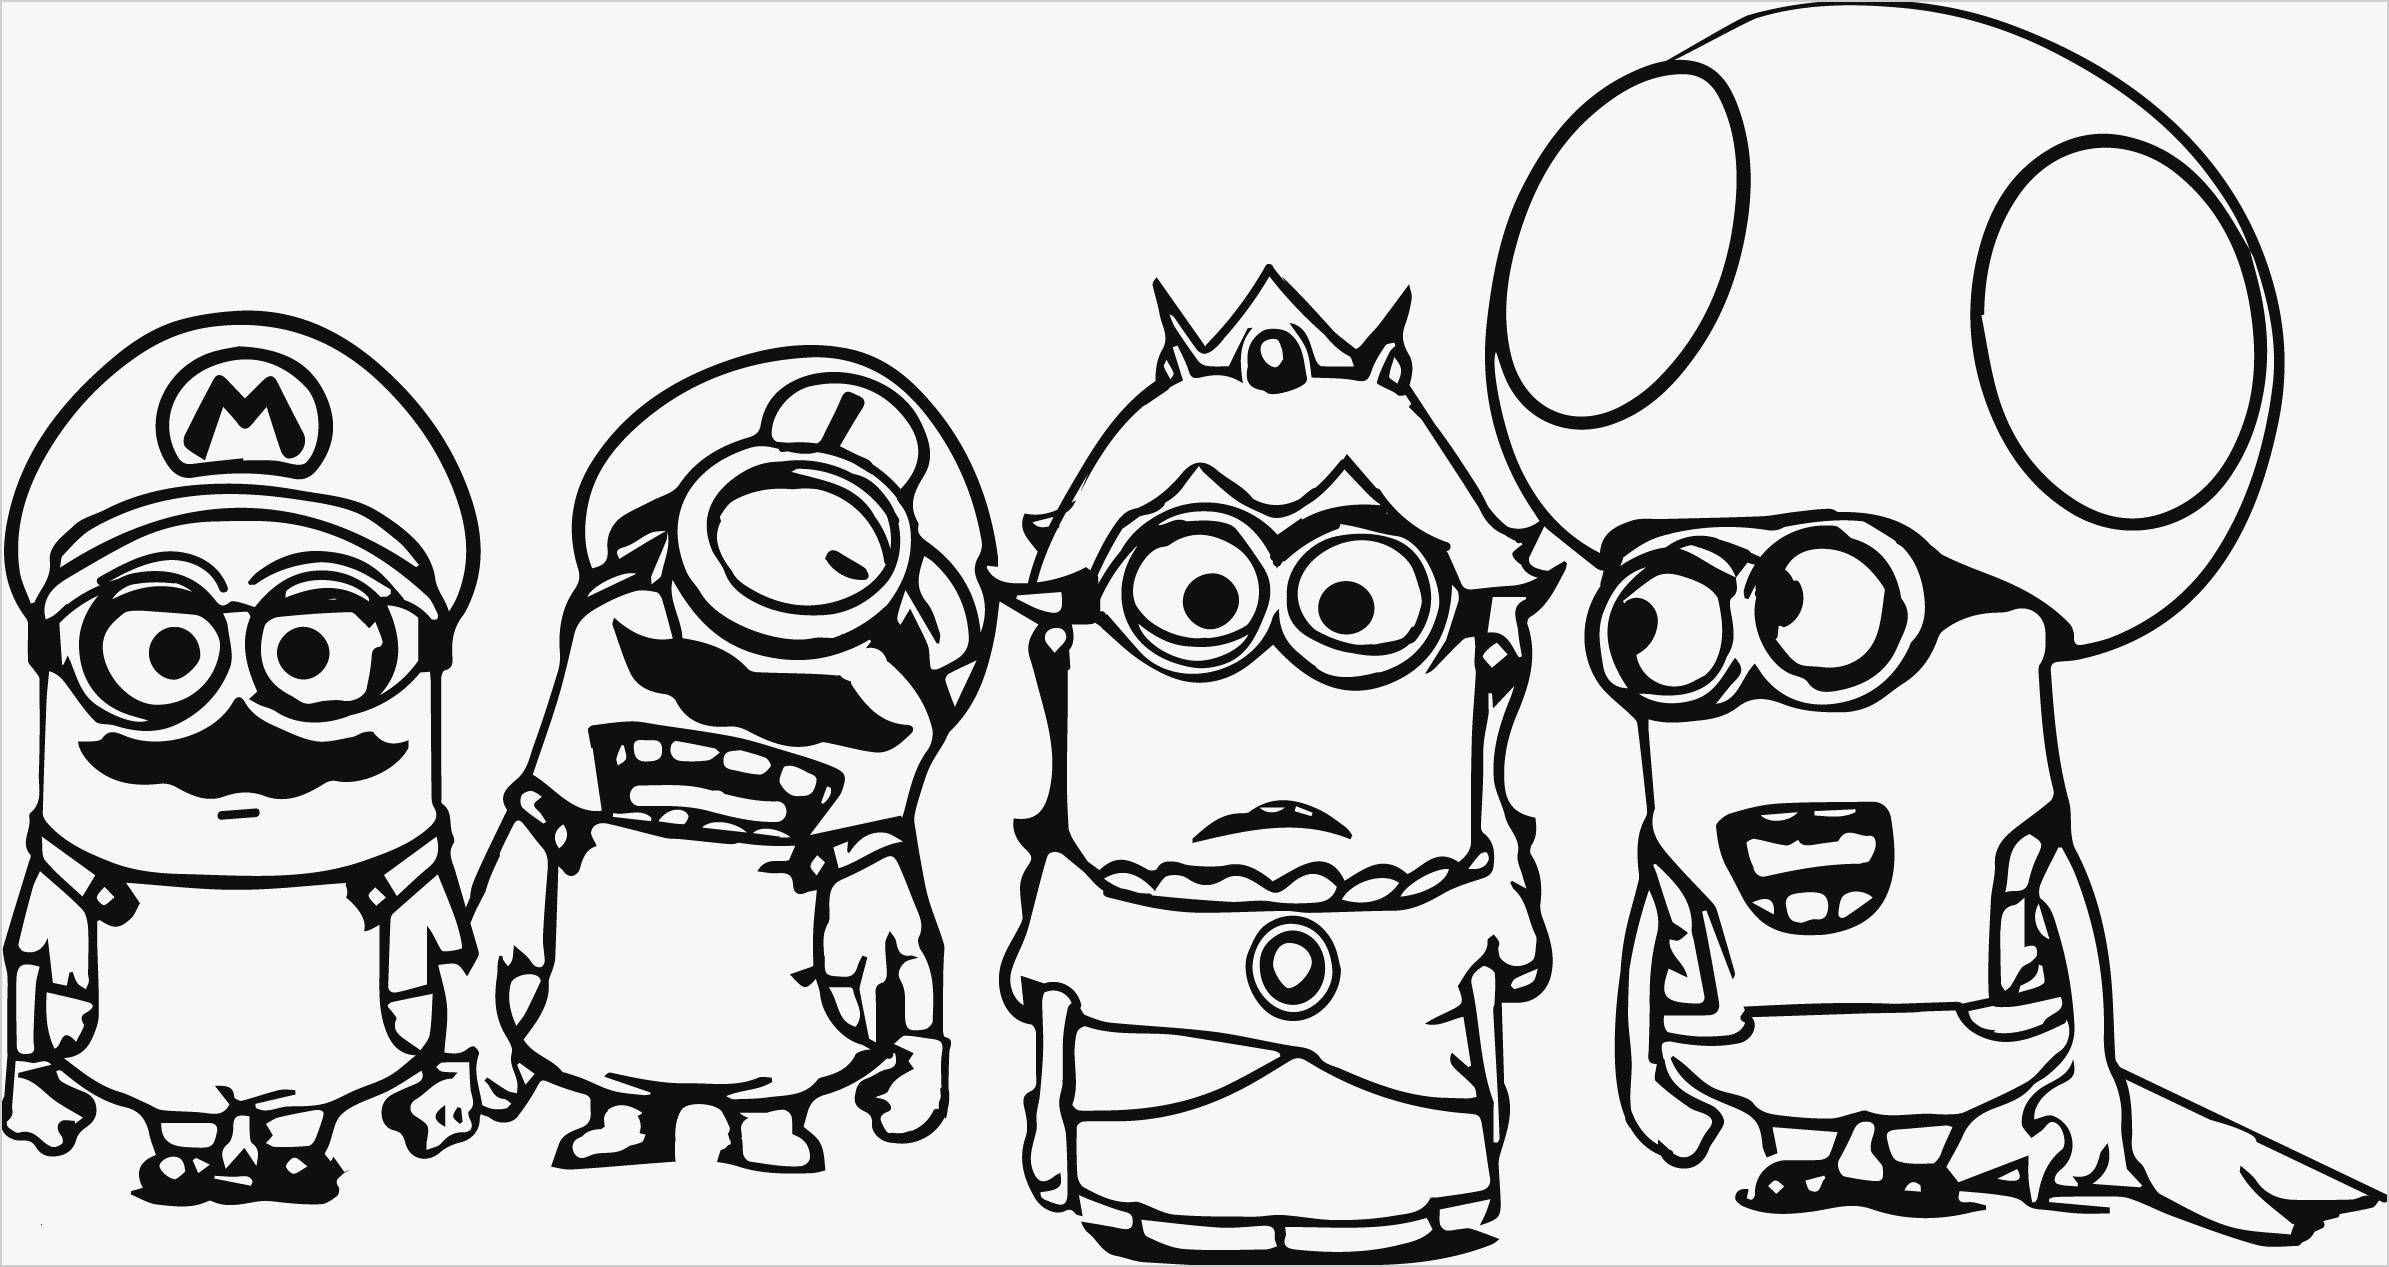 Minion Printable Coloring Pages Free Collection Of 43 Minion